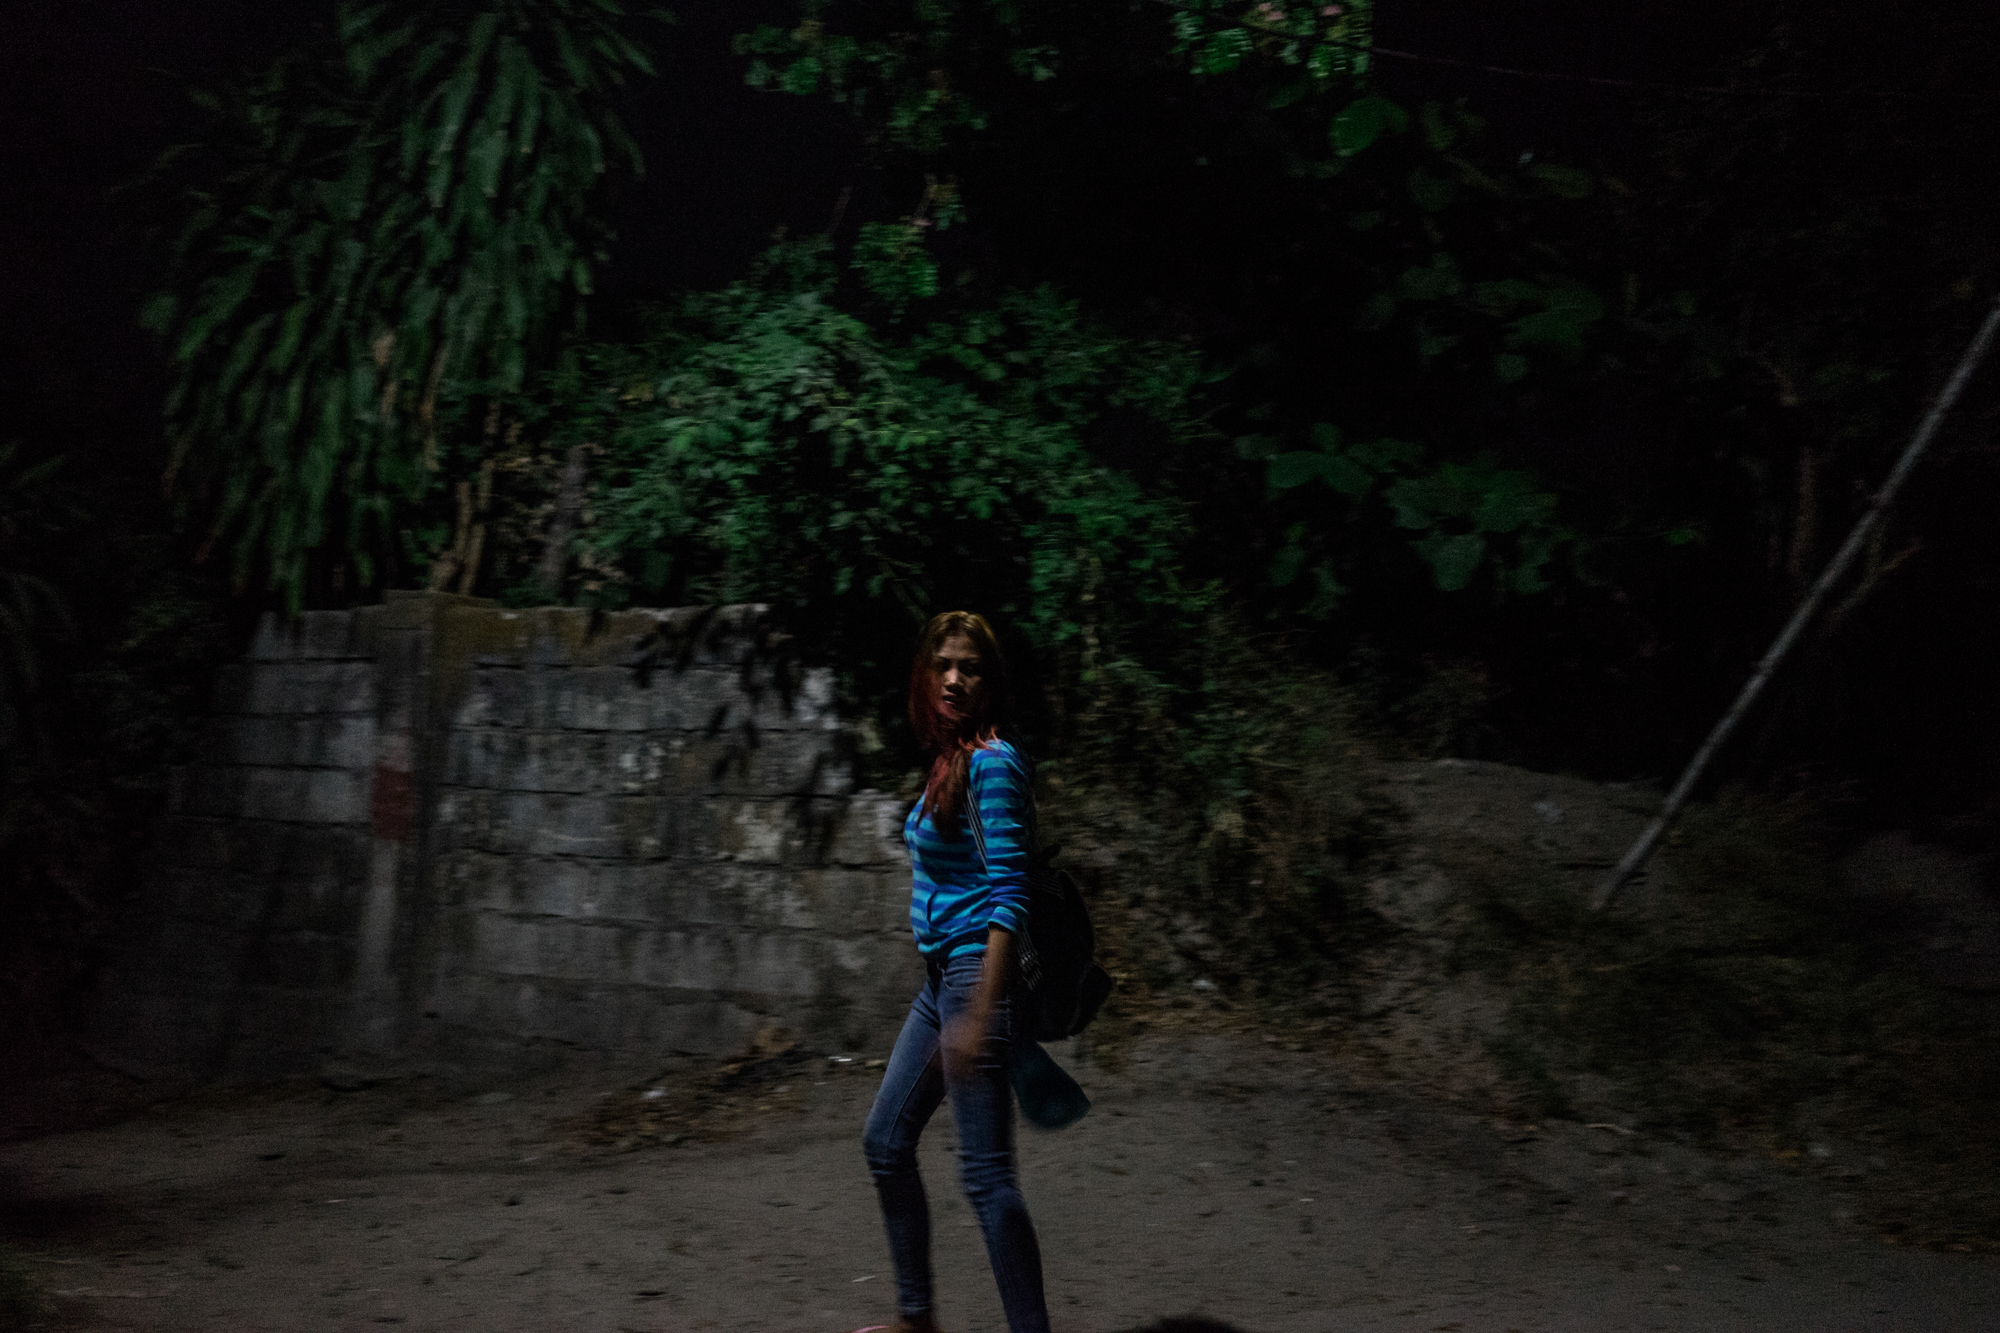 Jojo walks home after a night at work in one of the bars in Angeles City. Before typhoon Haiyan, she was trying to quit working in the sex industry and settle back to Leyte, but when the storm came, she had to go back. (Photo by Hannah Reyes Morales/GroundTruth)